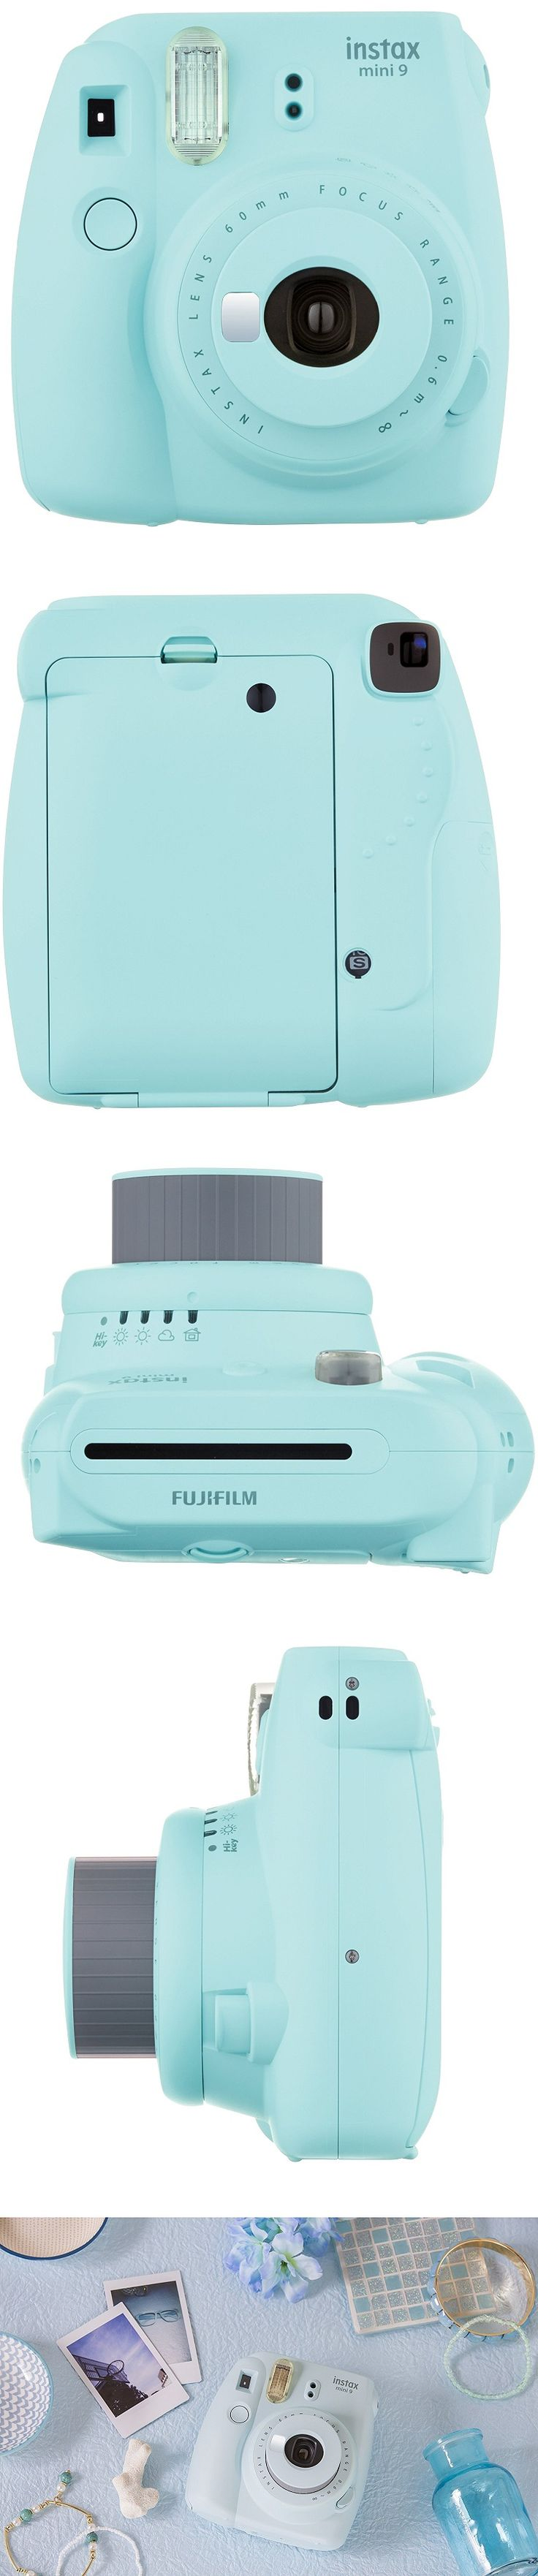 Fujifilm Instax Mini 9 Instant Camera Ice Blue. #Gadgets #Tech